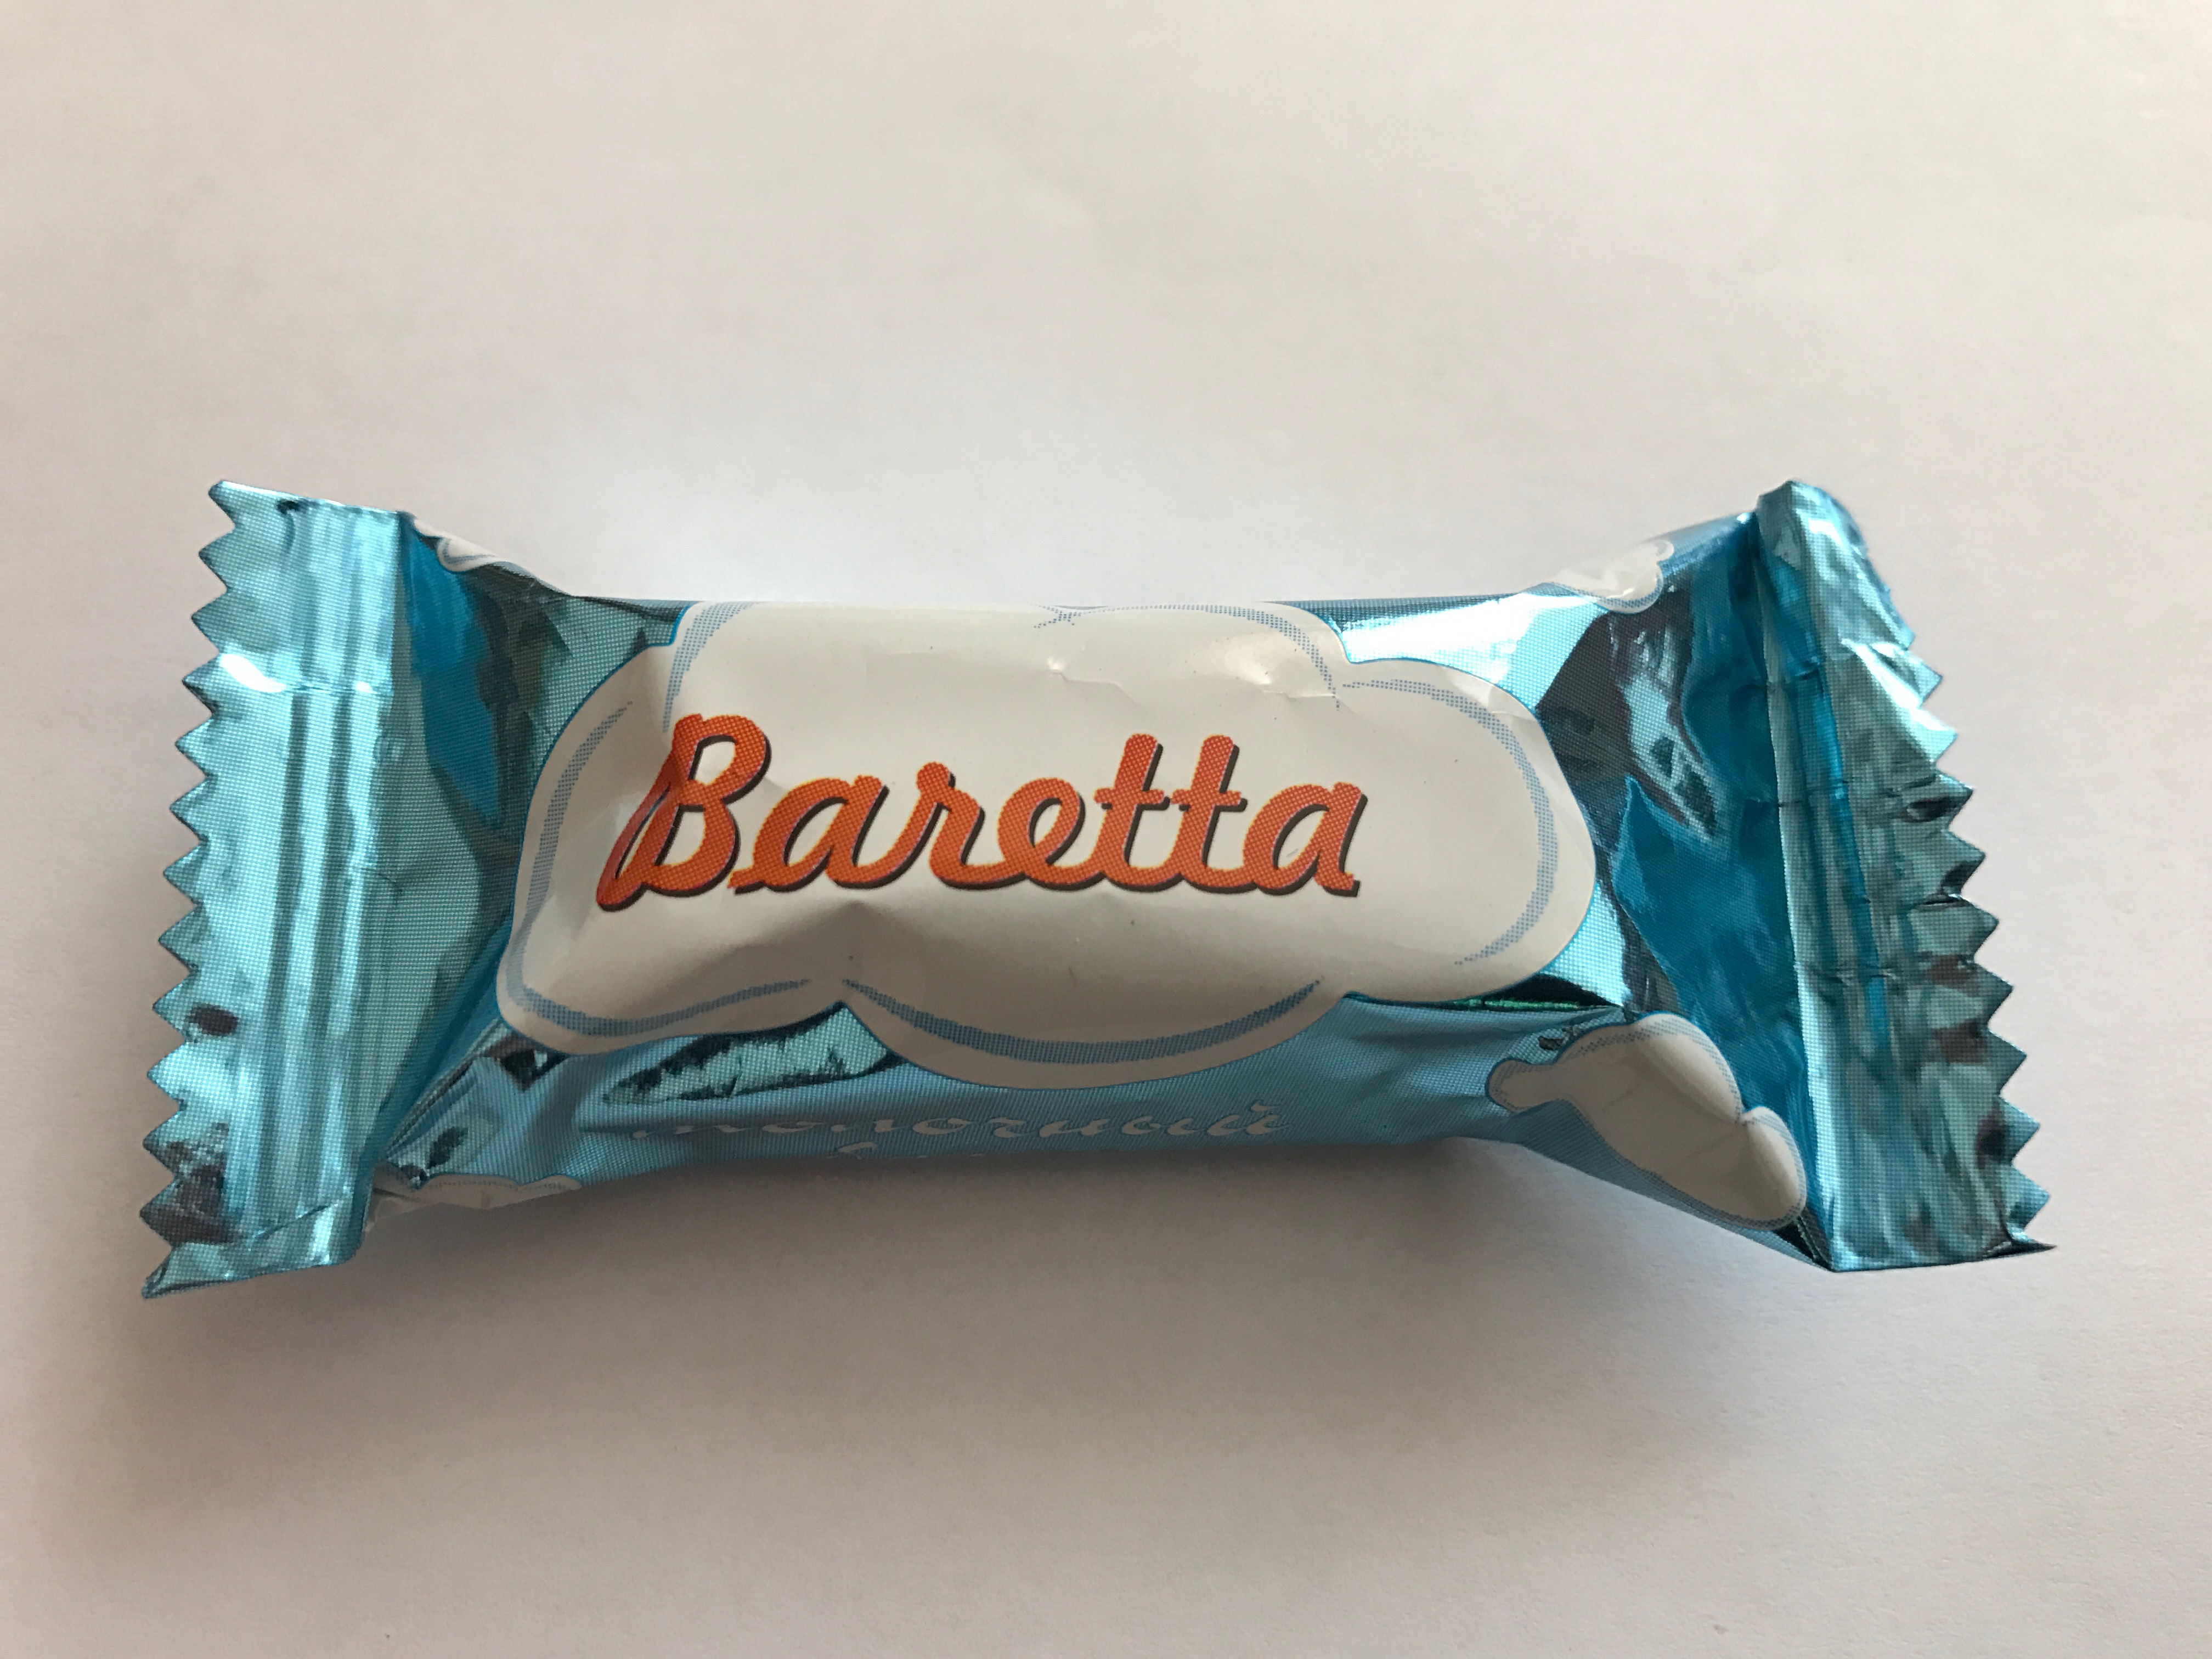 Candy bar glazed Baretta